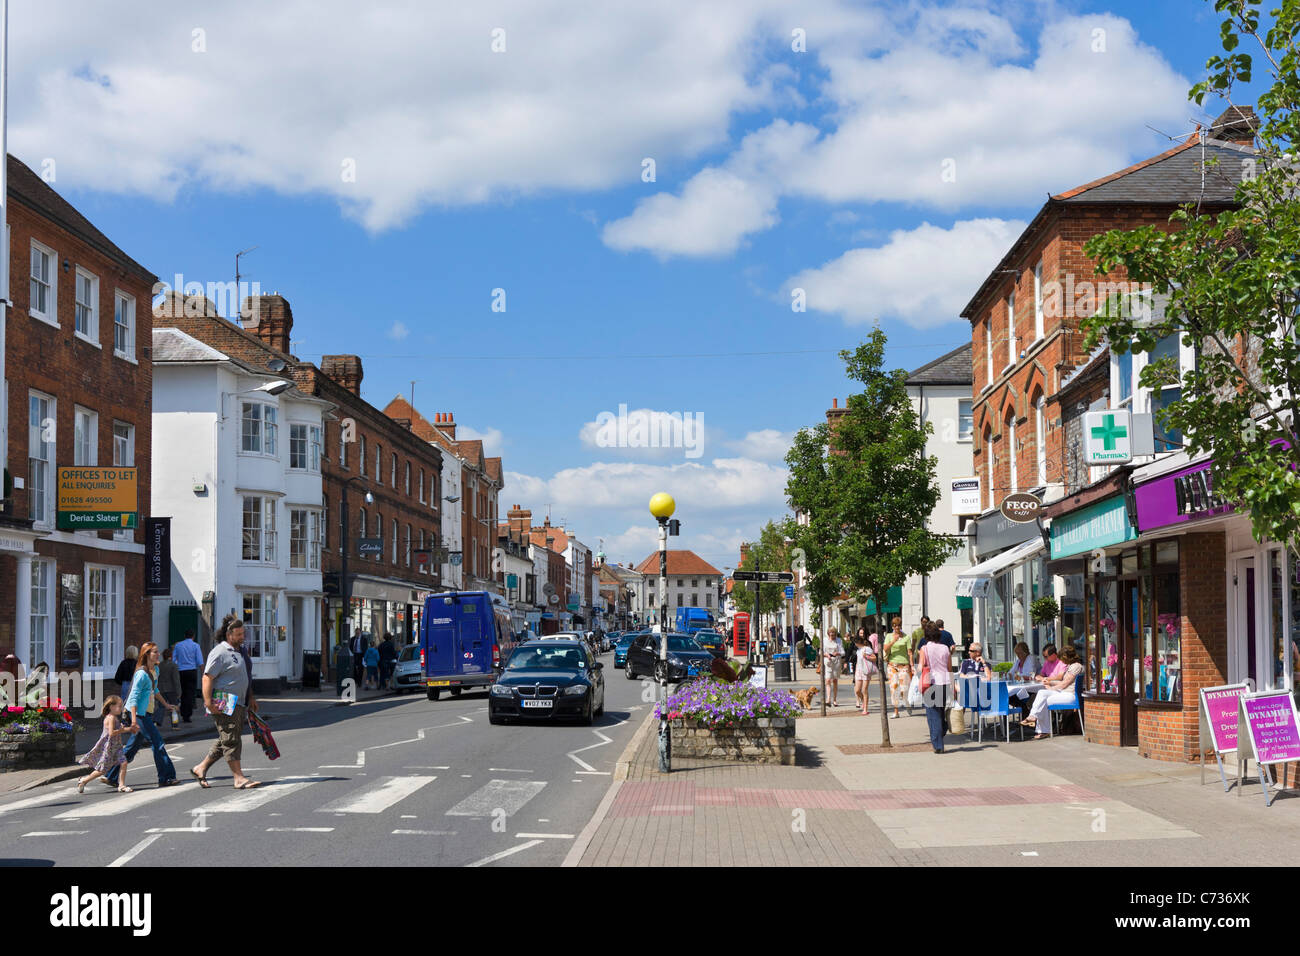 Shops and cafe on the High Street in Marlow, Buckinghamshire, England, UK Stock Photo